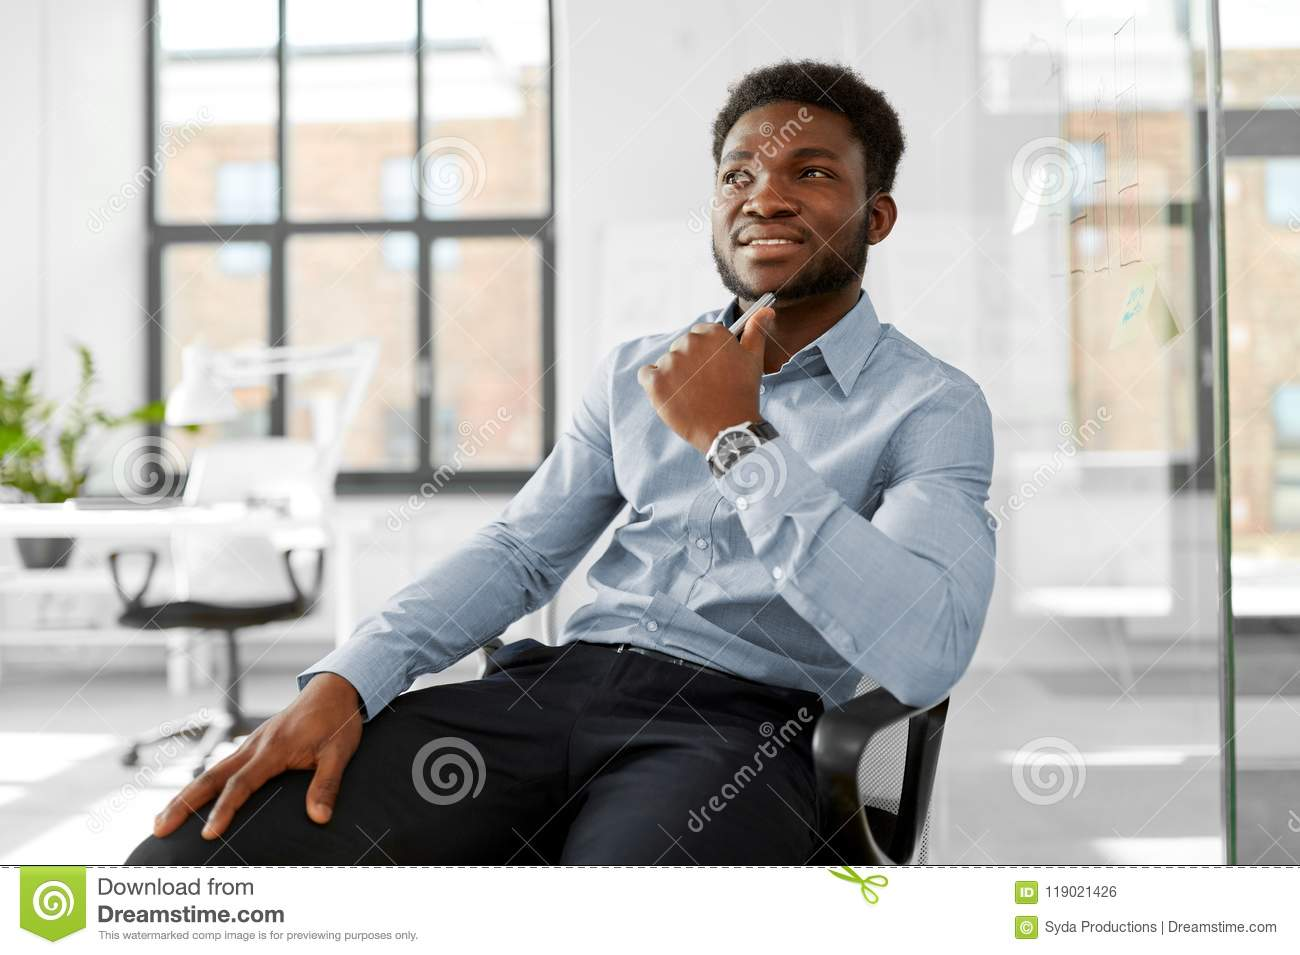 Download African Businessman Sitting On Office Chair Stock Photo - Image of male, african: 119021426